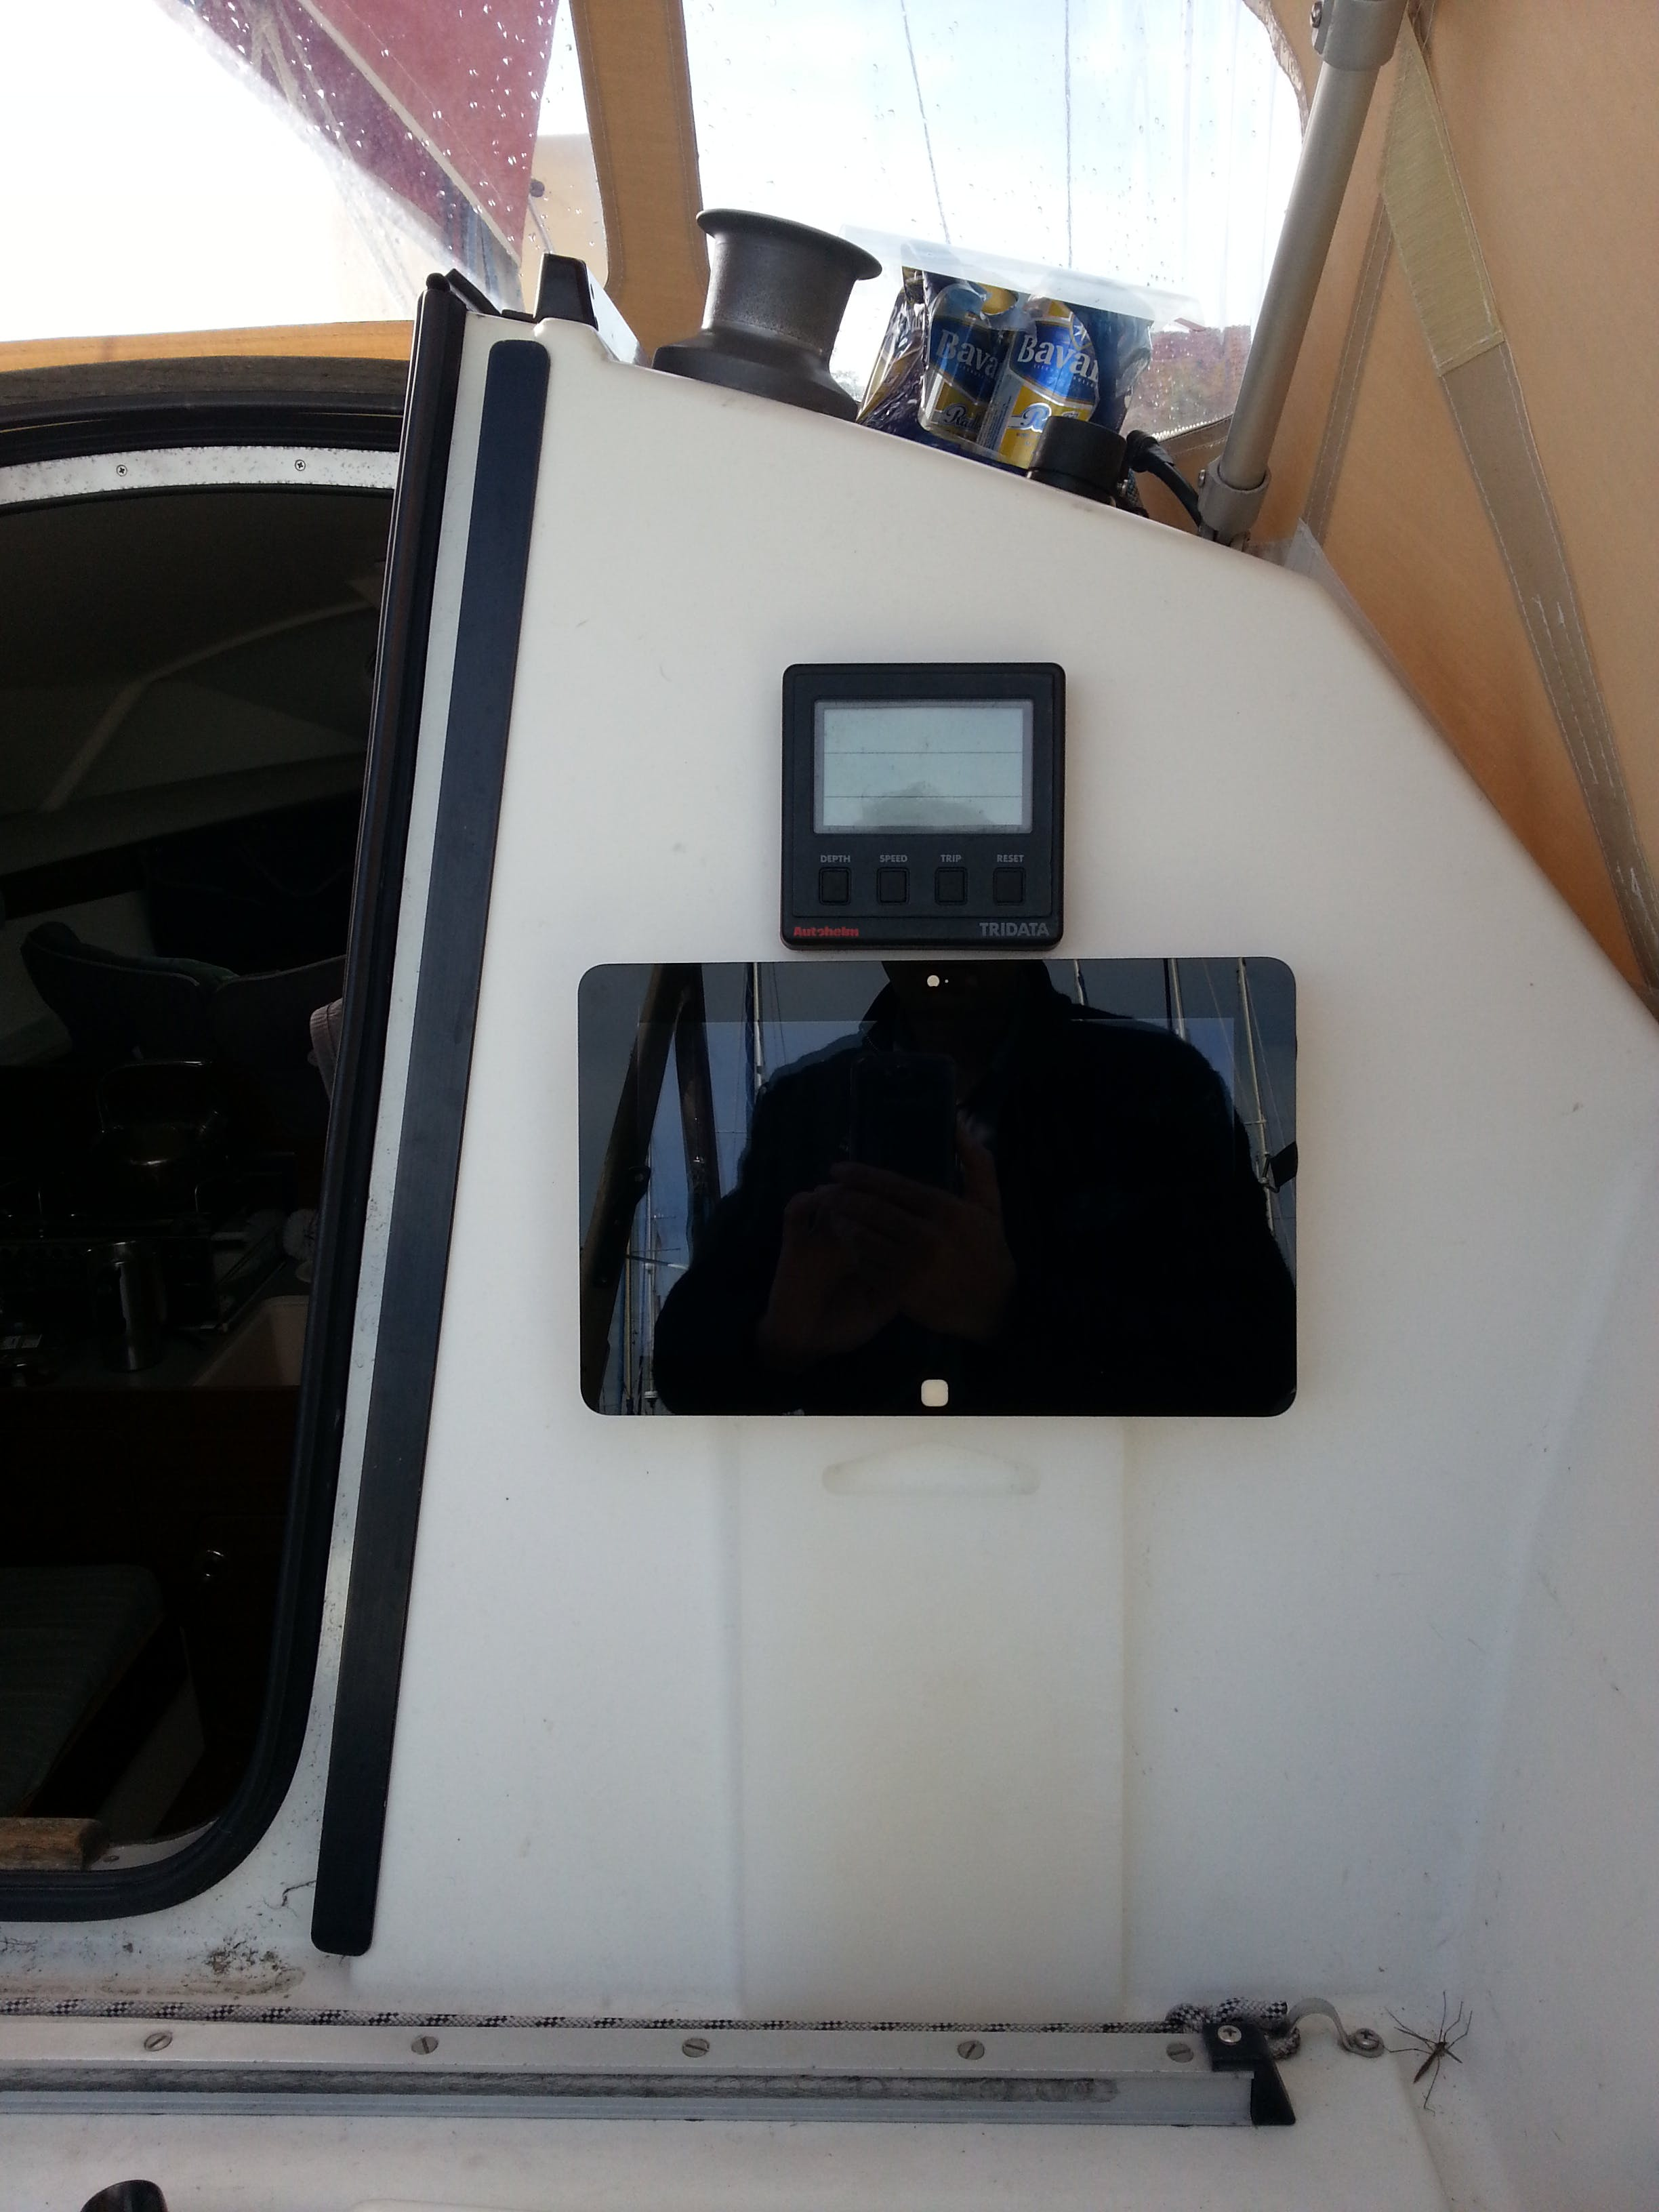 The old Autohelm ST50 Tridata and MIDC on my own boat